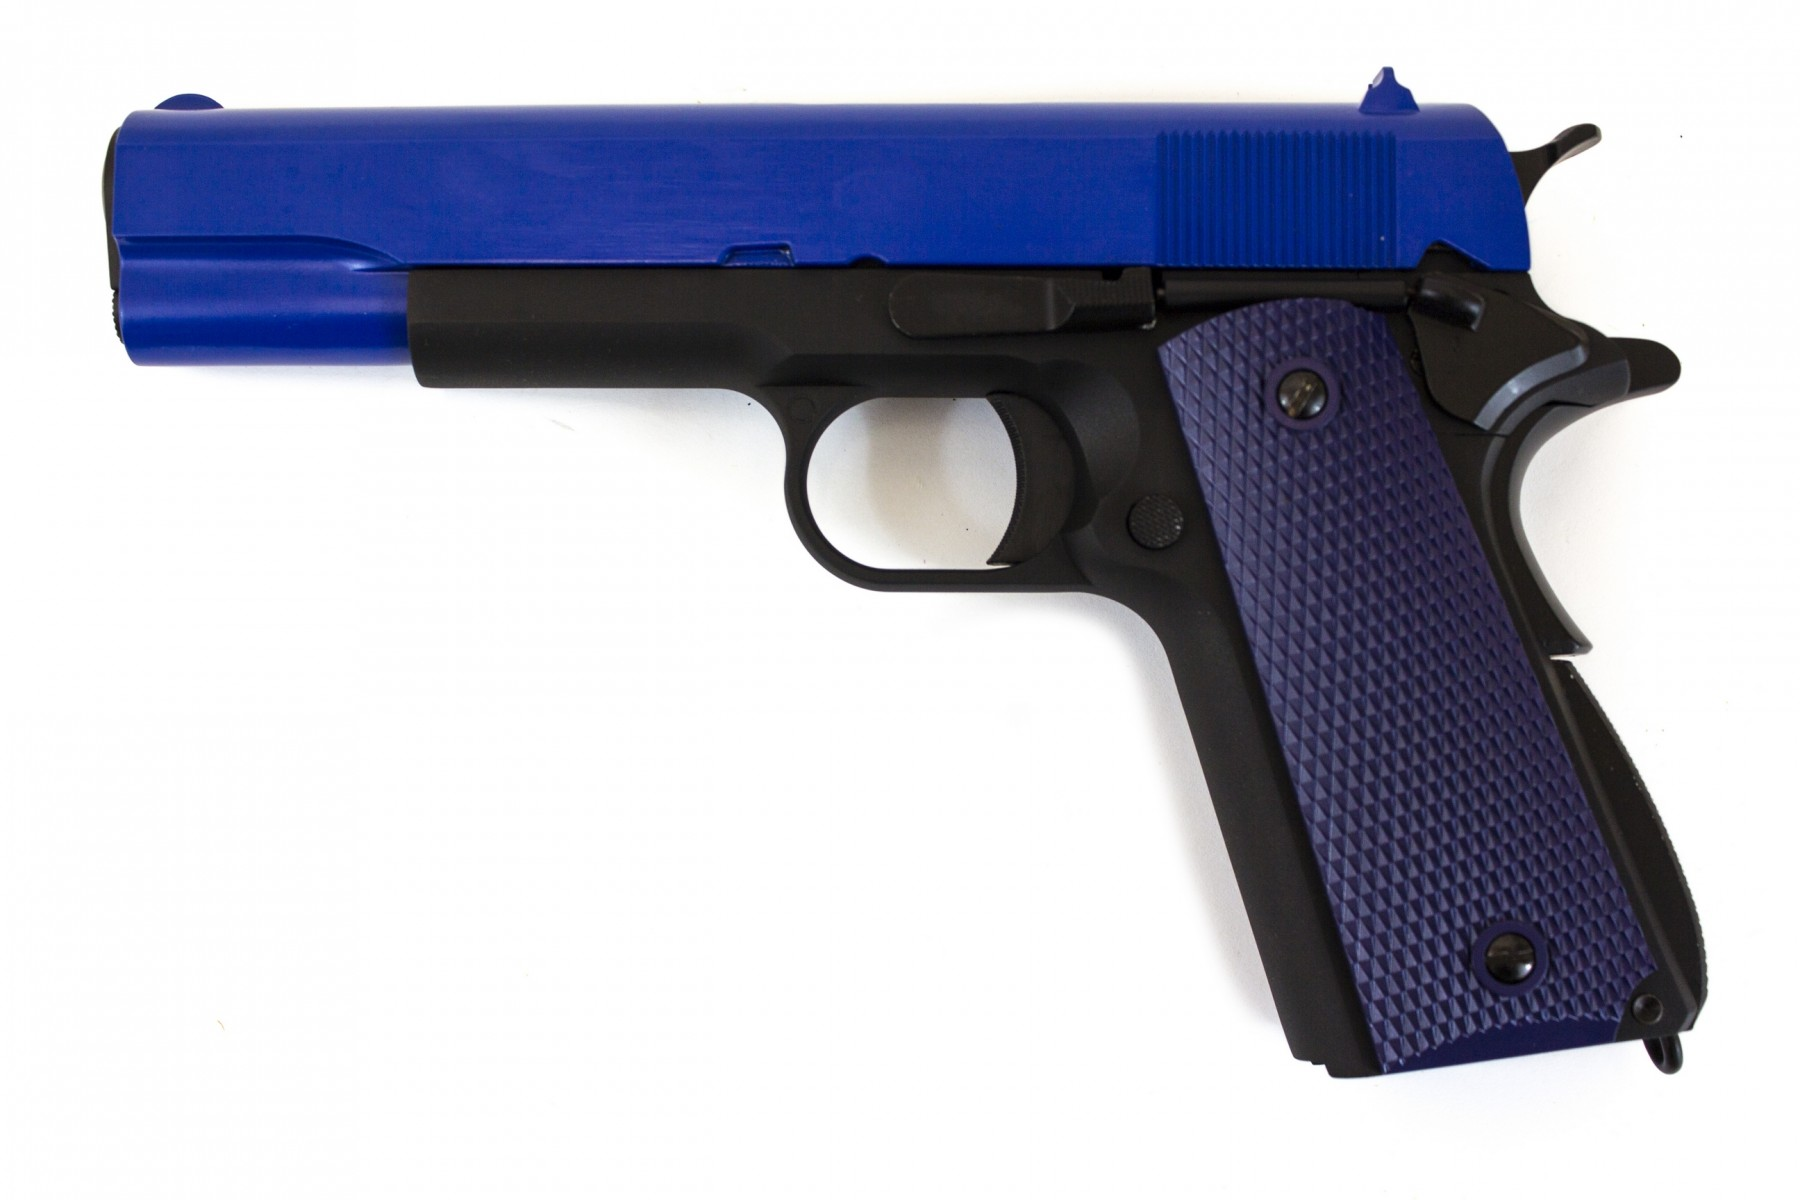 1911 TWO TONE PISTOL product image